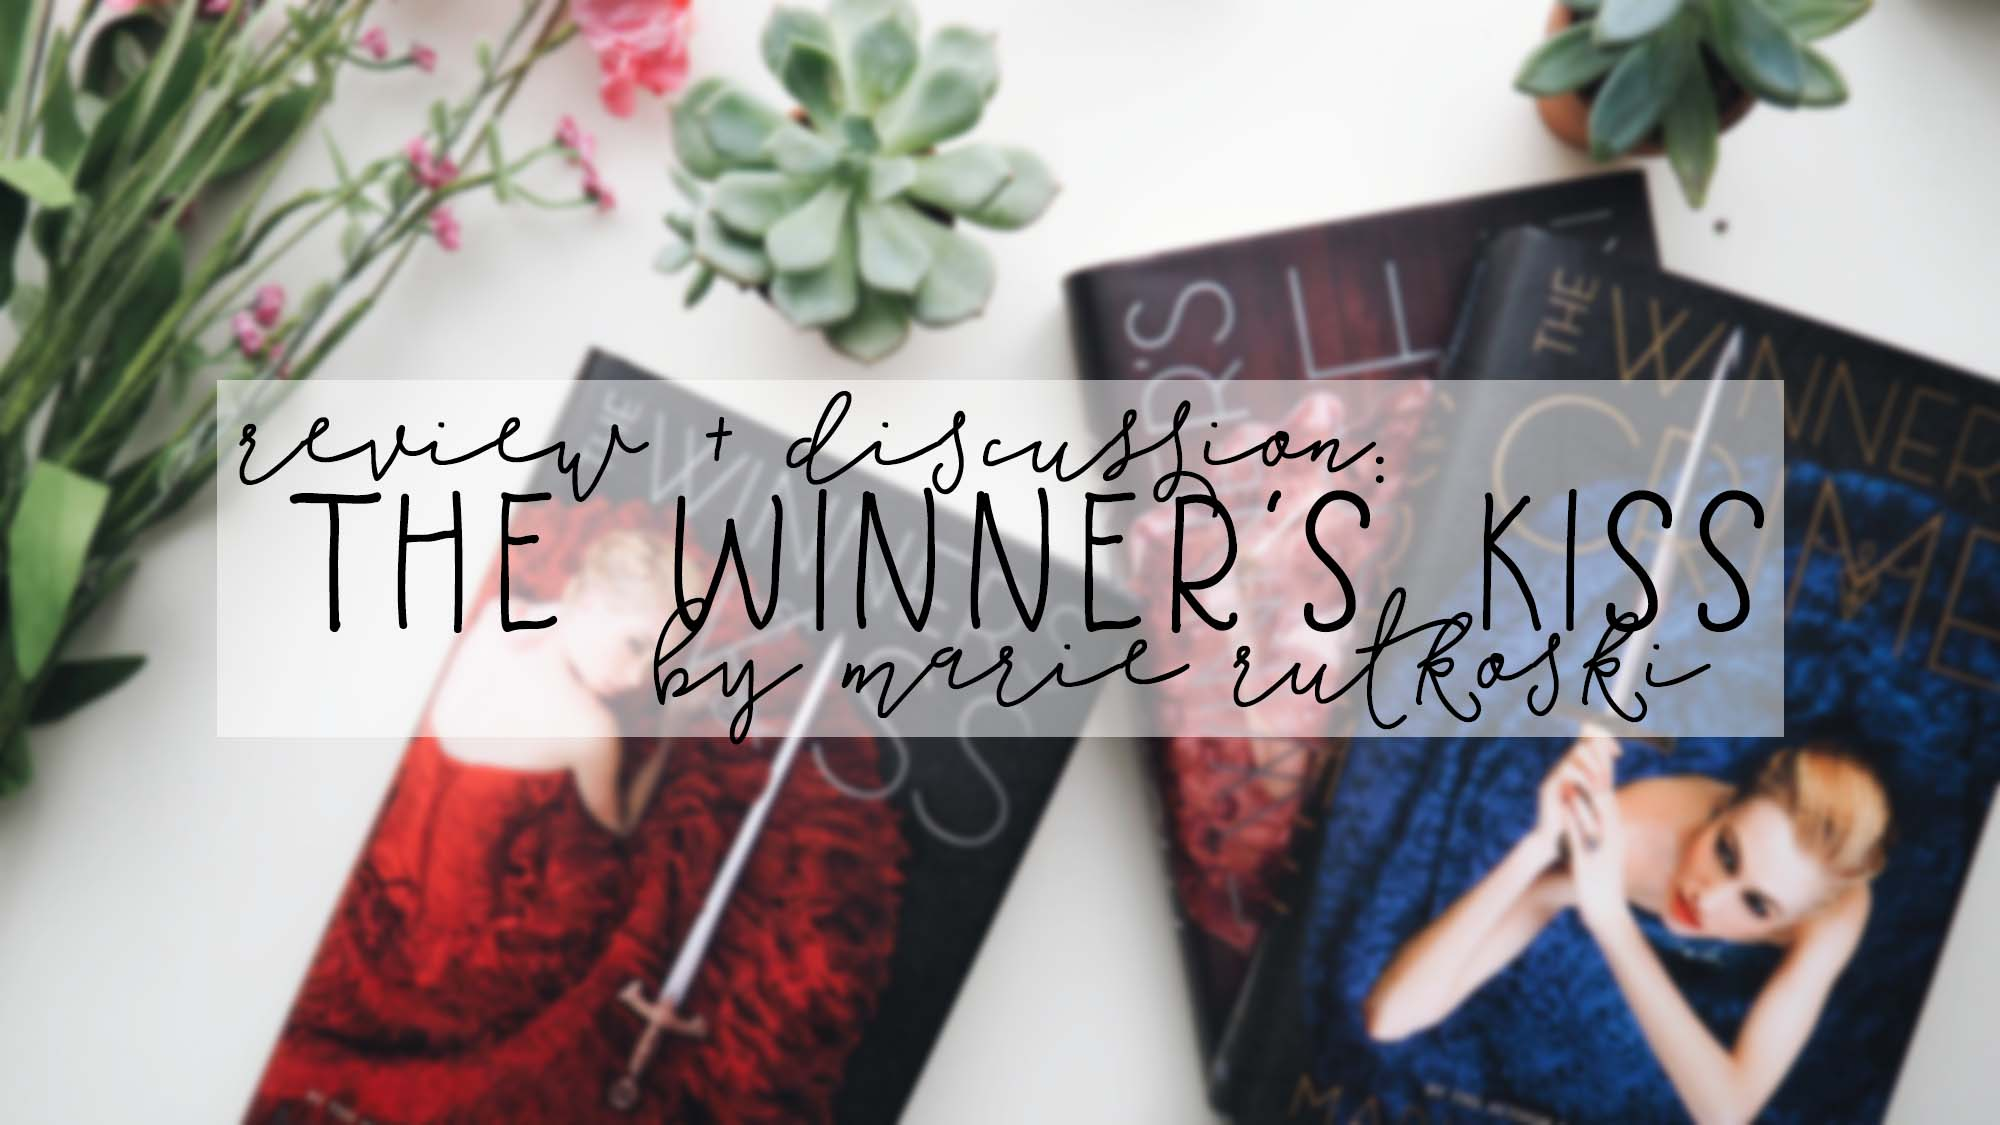 REVIEW + DISCUSSION: the winner's kiss, by marie rutkoski